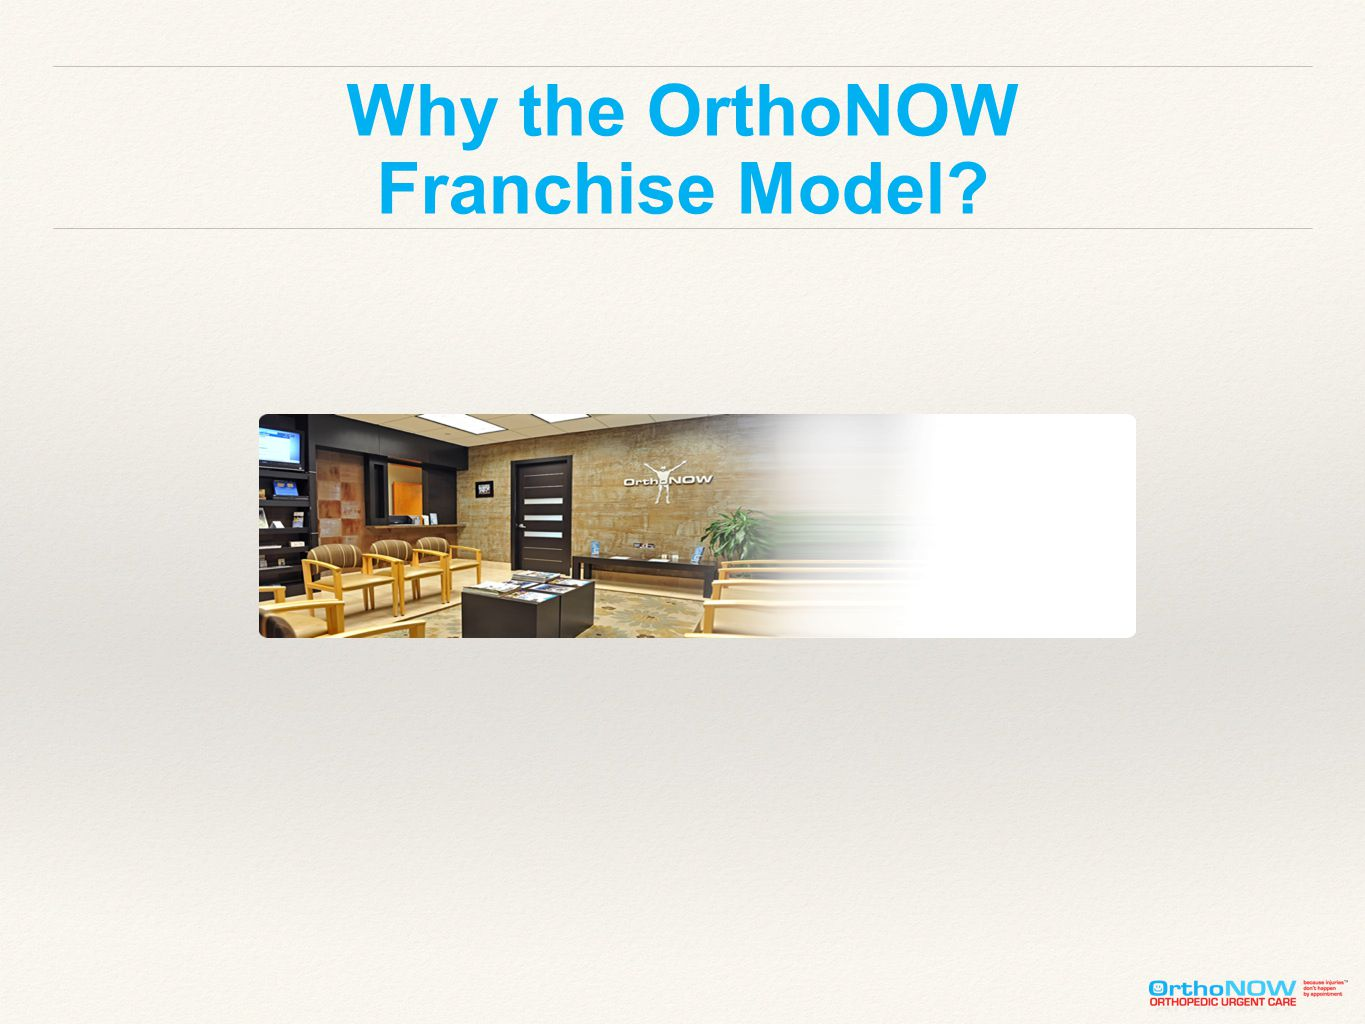 Why the OrthoNOW Franchise Model?